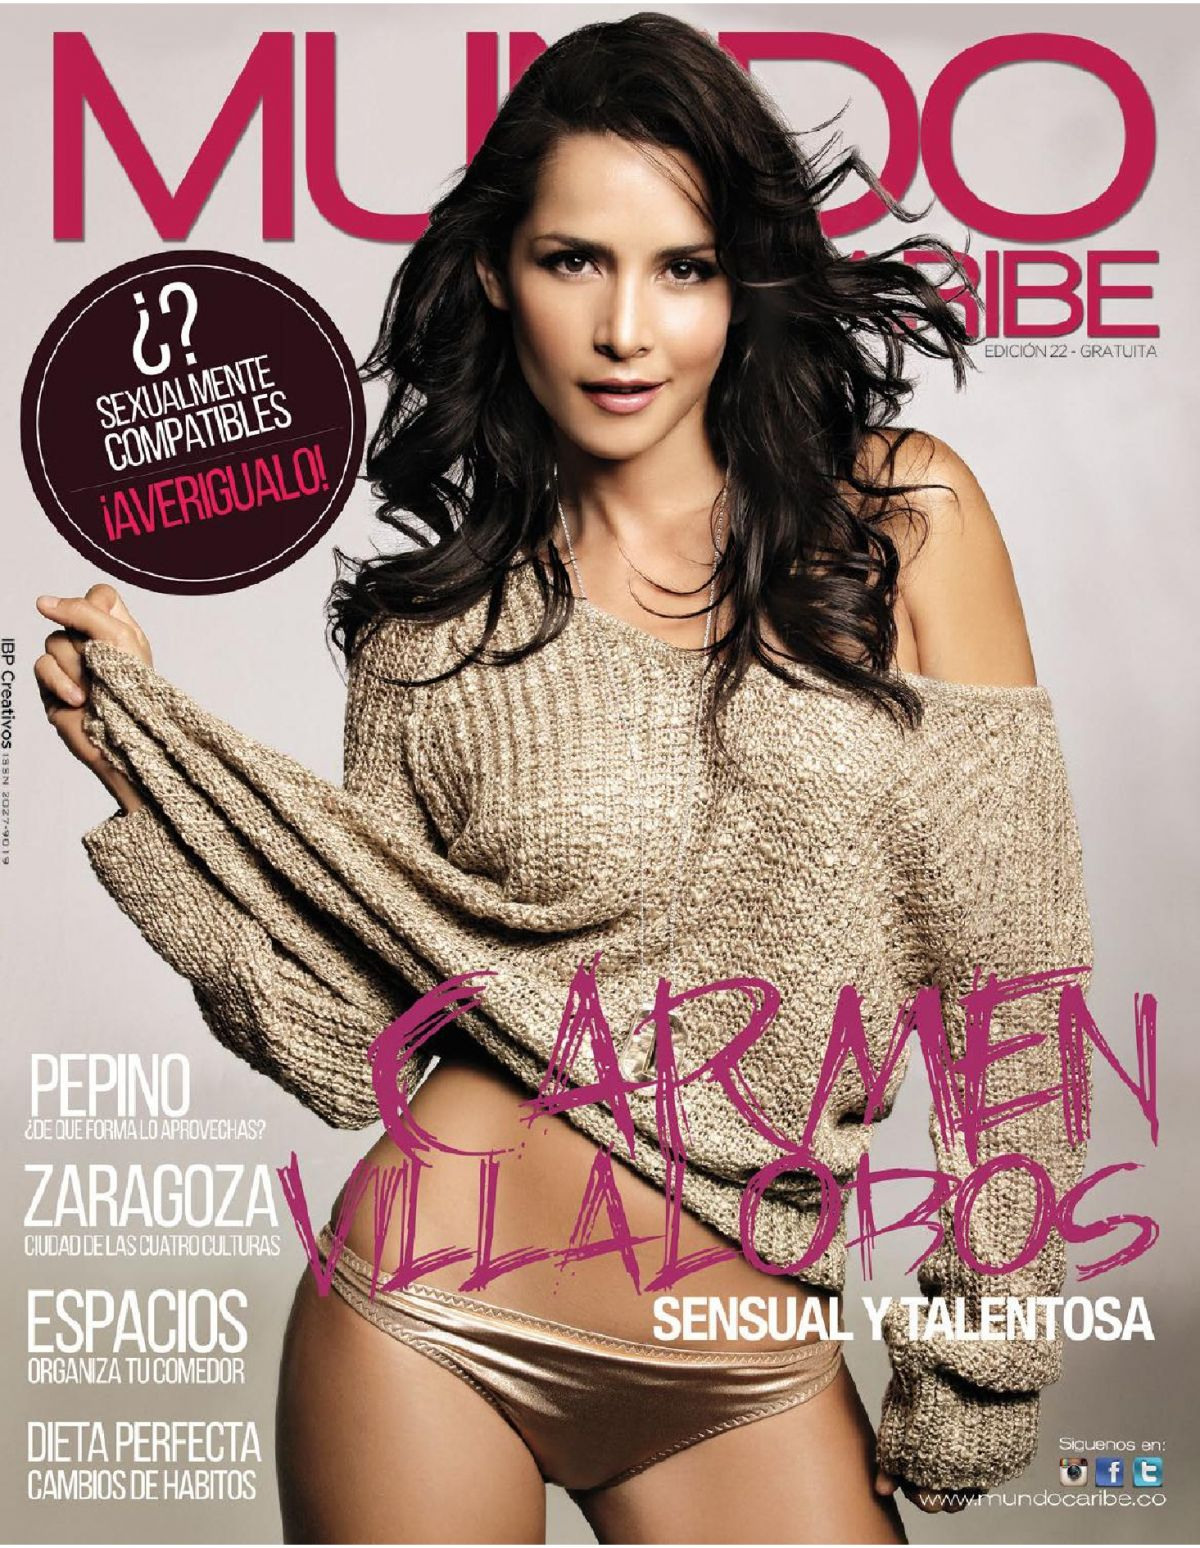 CARMEN VILLALOBOS in Mundo Caribe #22 Issue